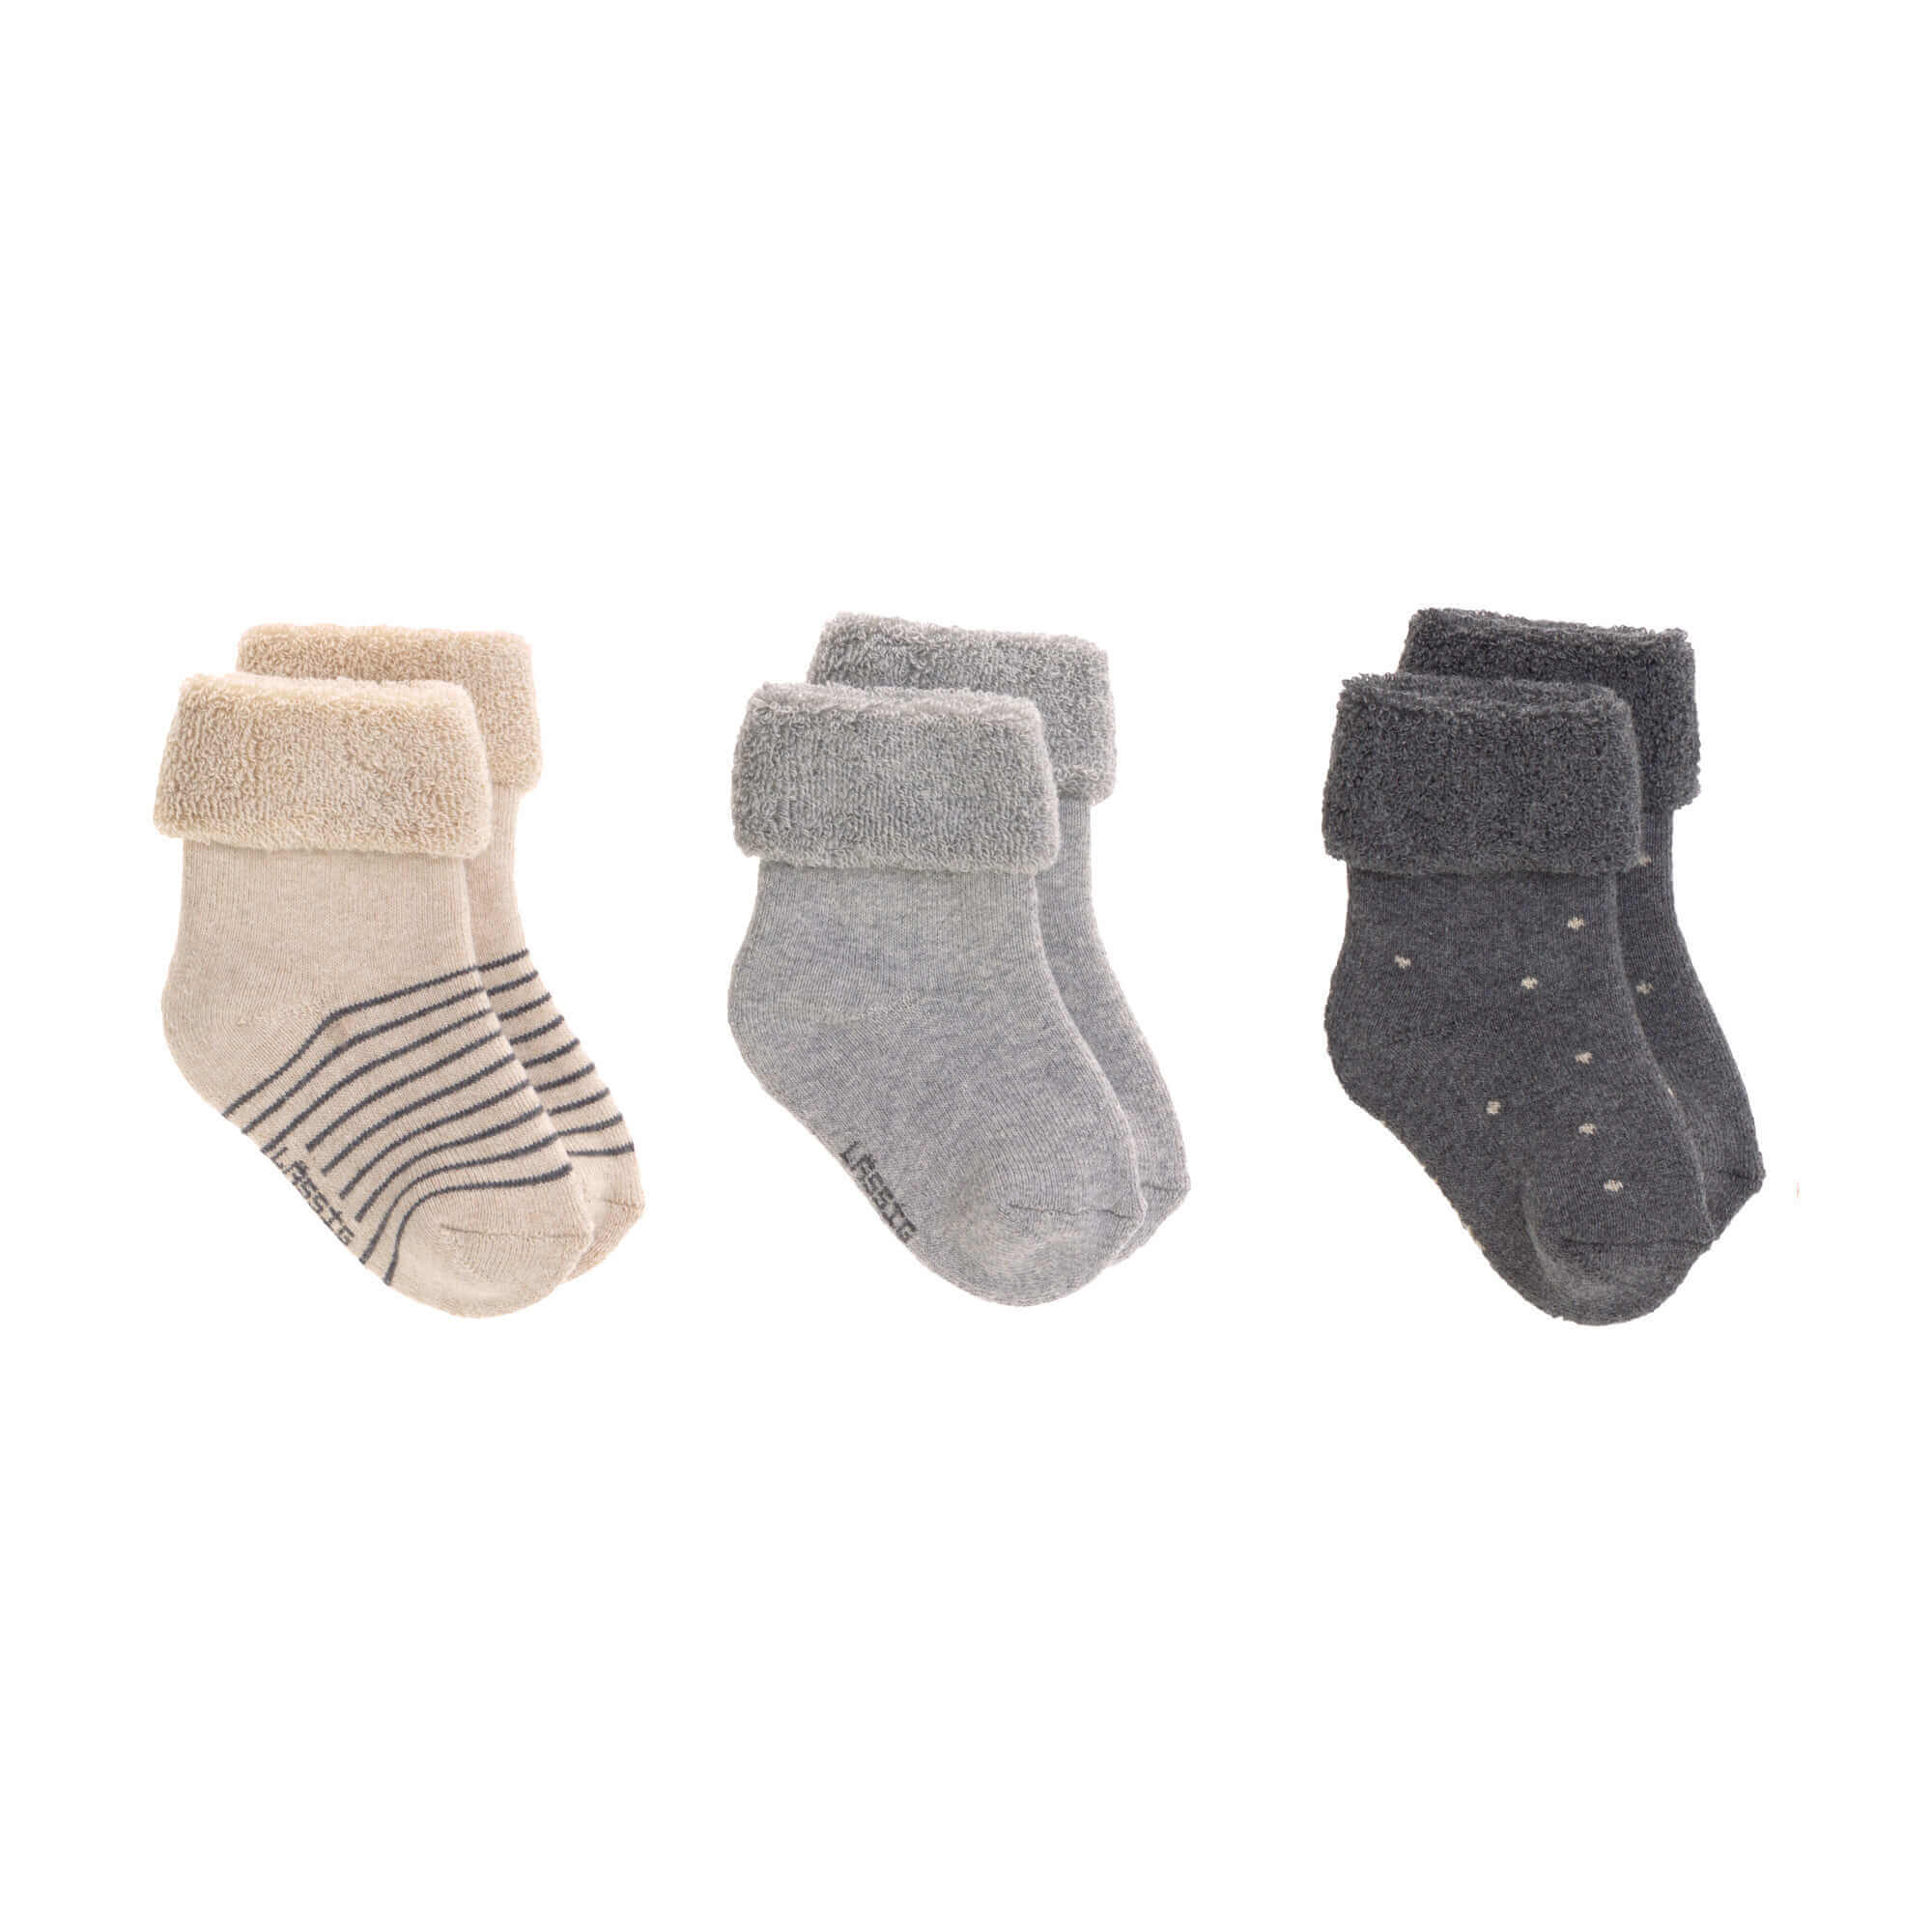 Babysocken (3er-Pack) - Grey - Lässig